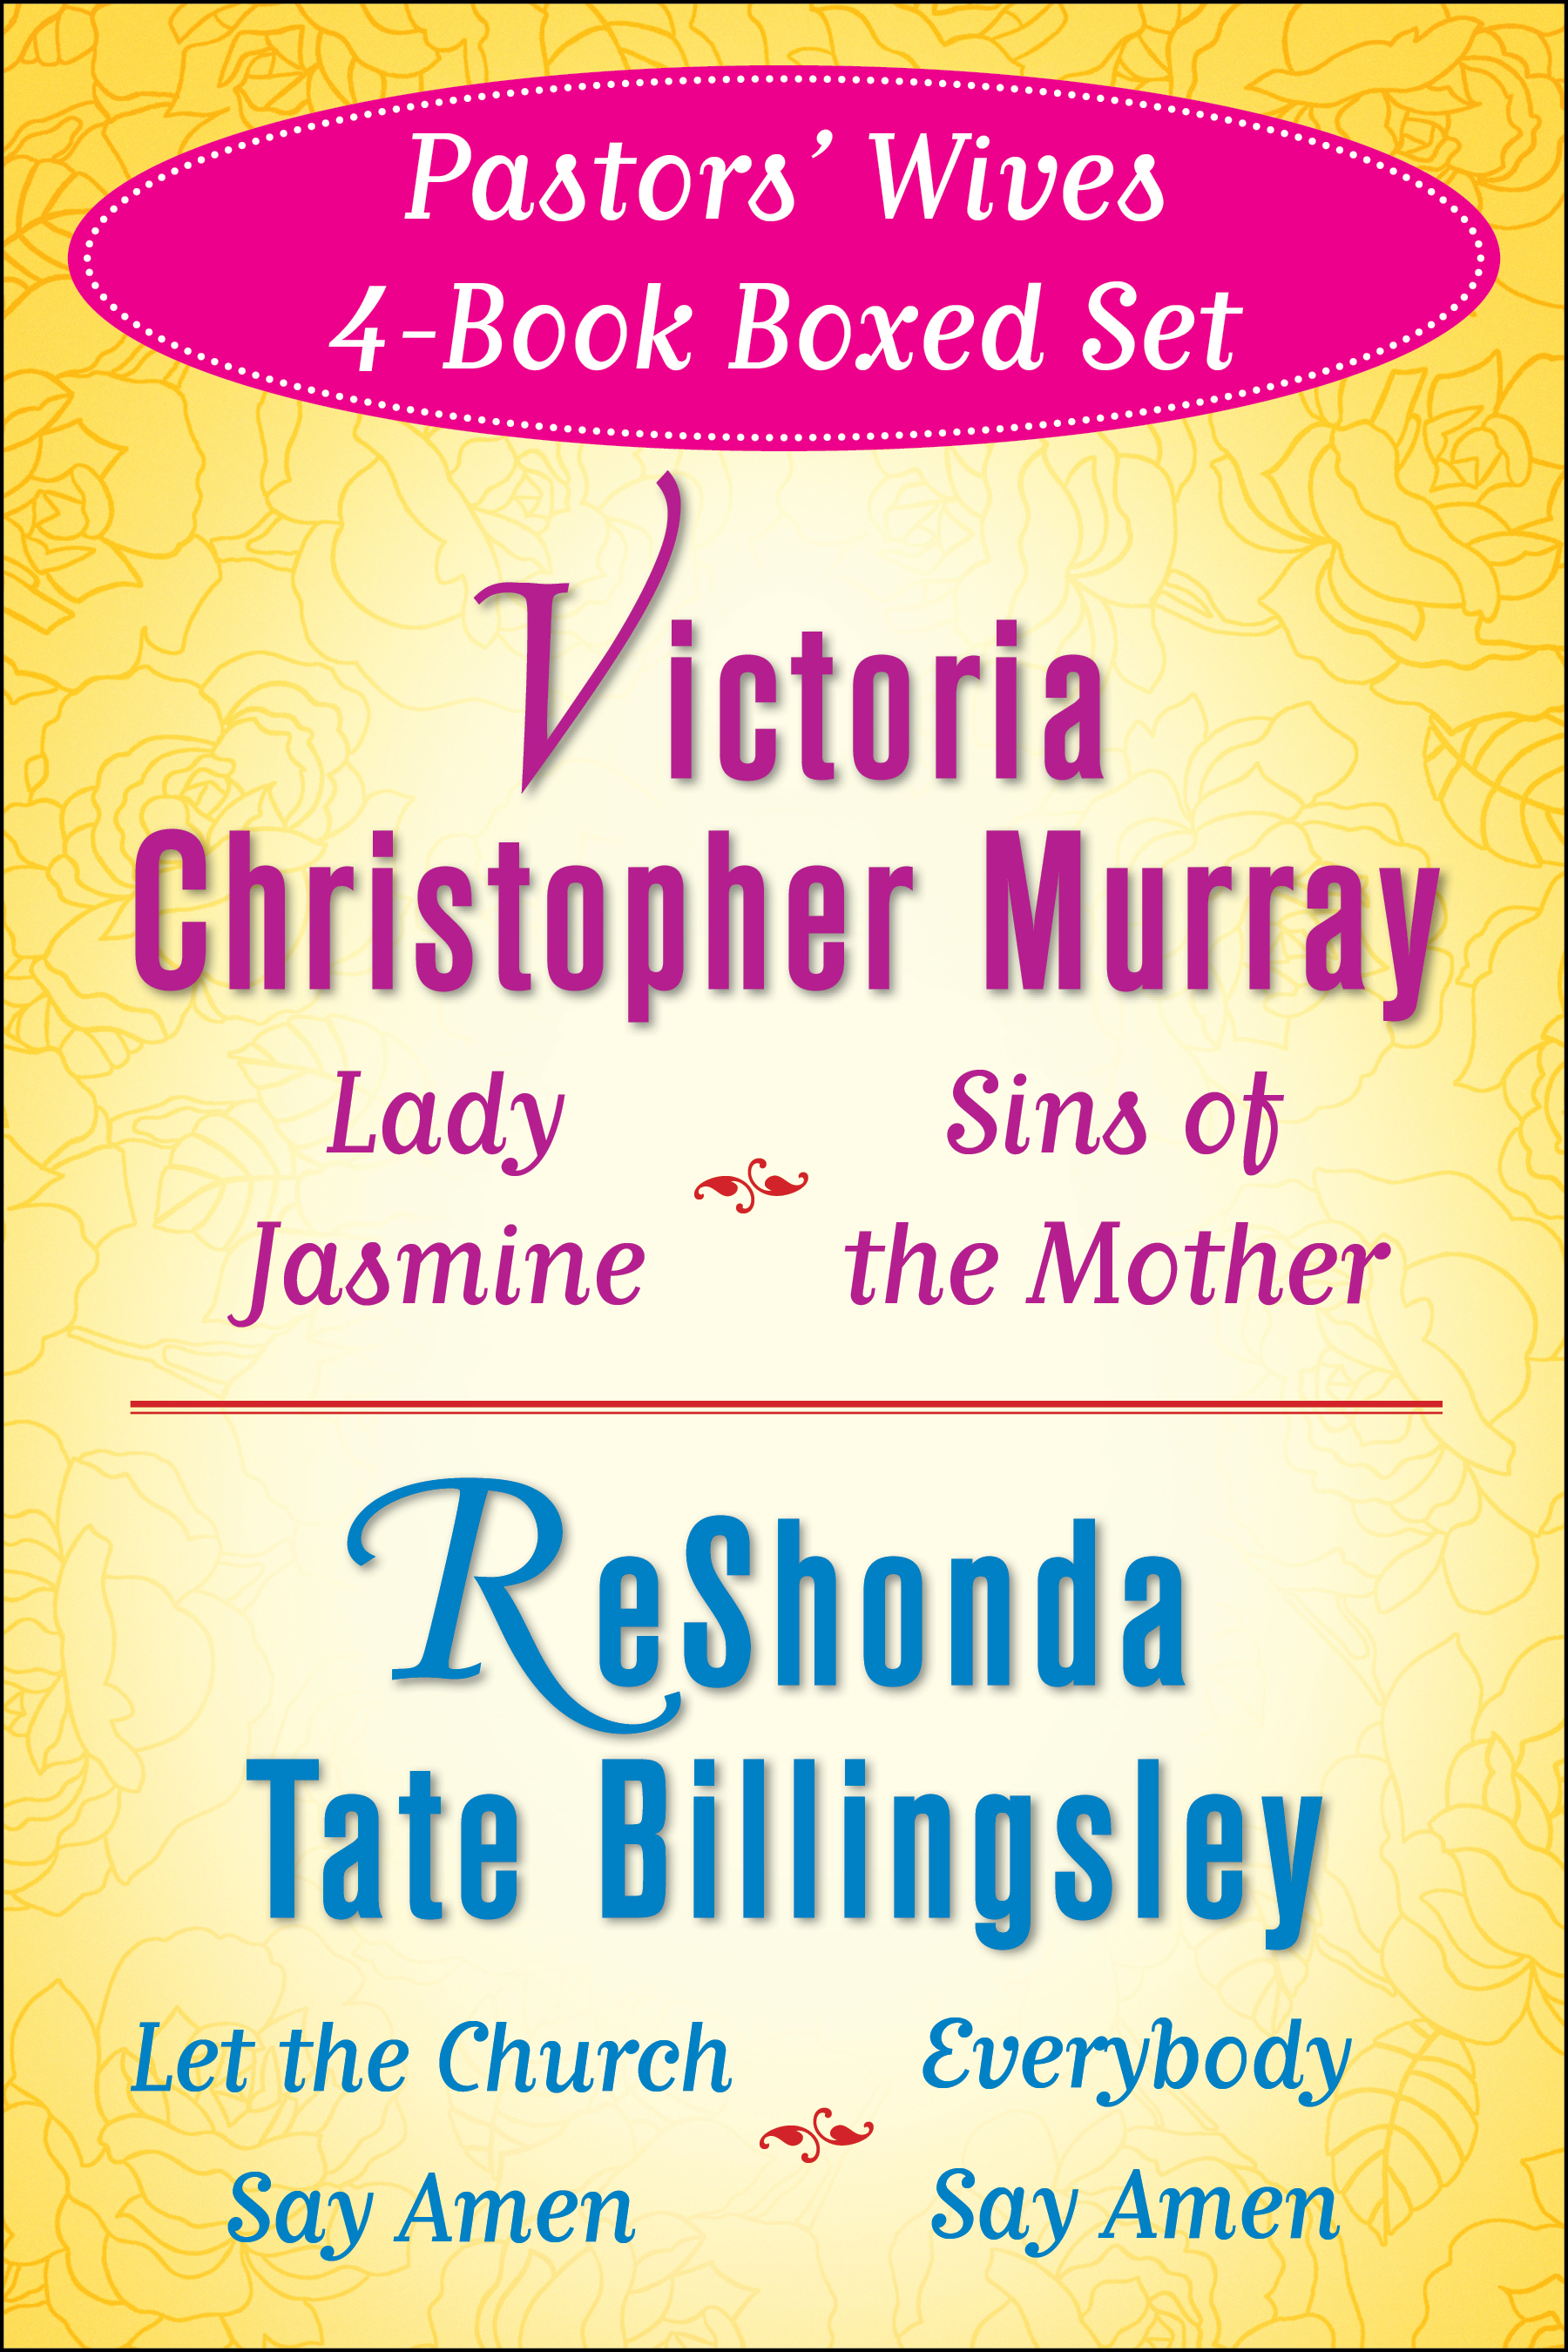 Victoria christopher murray and reshonda tate billingsleys lady jasmine sins of the mother let the church say amen everybody say amen fandeluxe Ebook collections